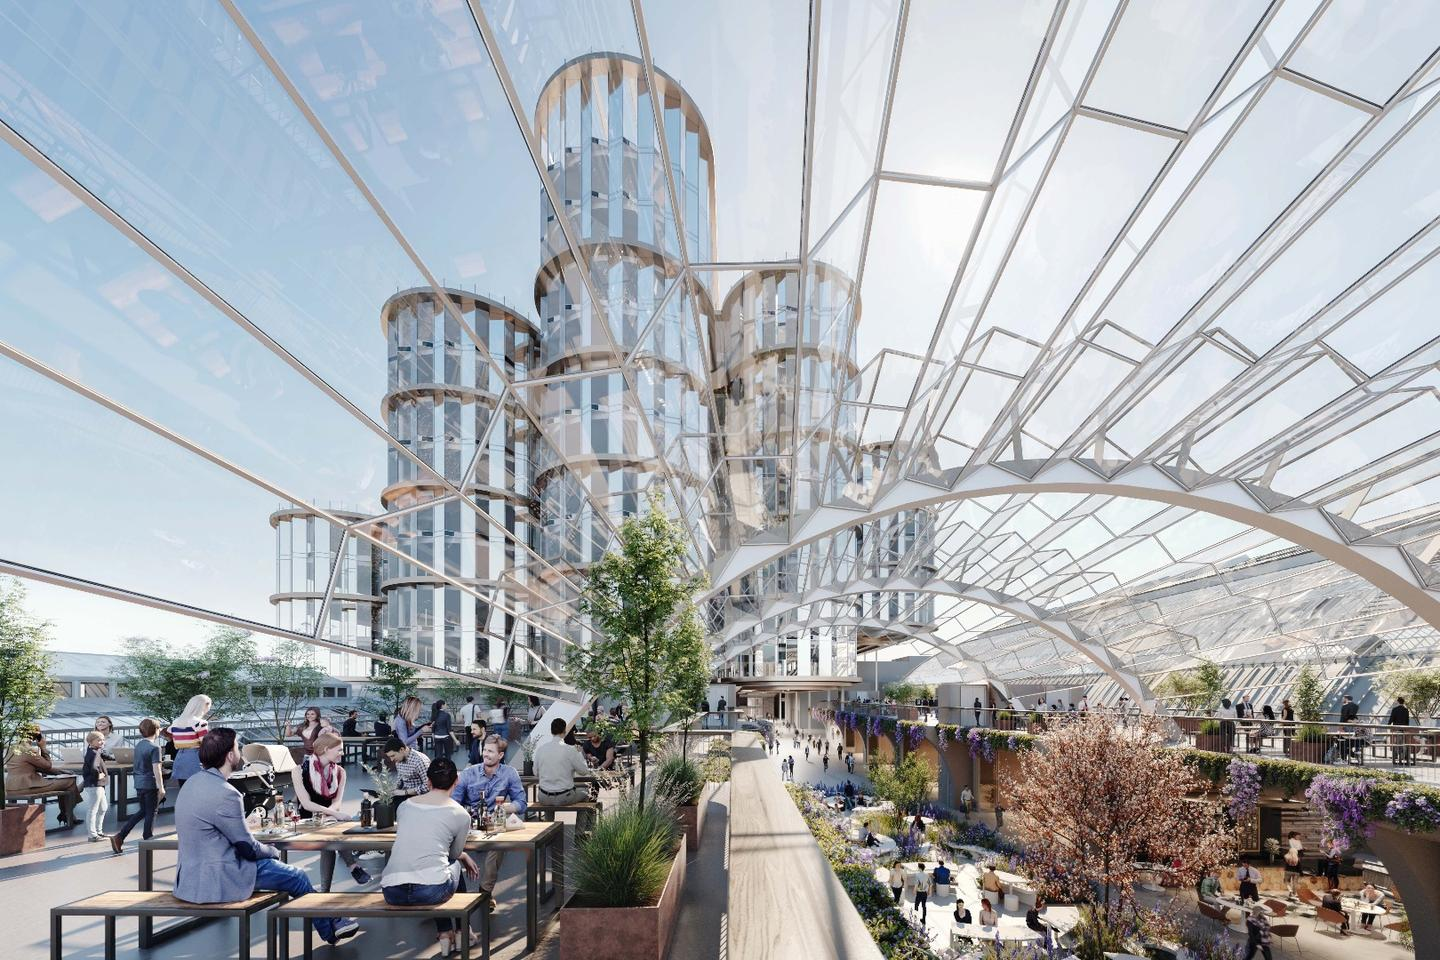 Heatherwick Studio recently received planning permission for the Olympia London project and construction is expected to begin in 2020